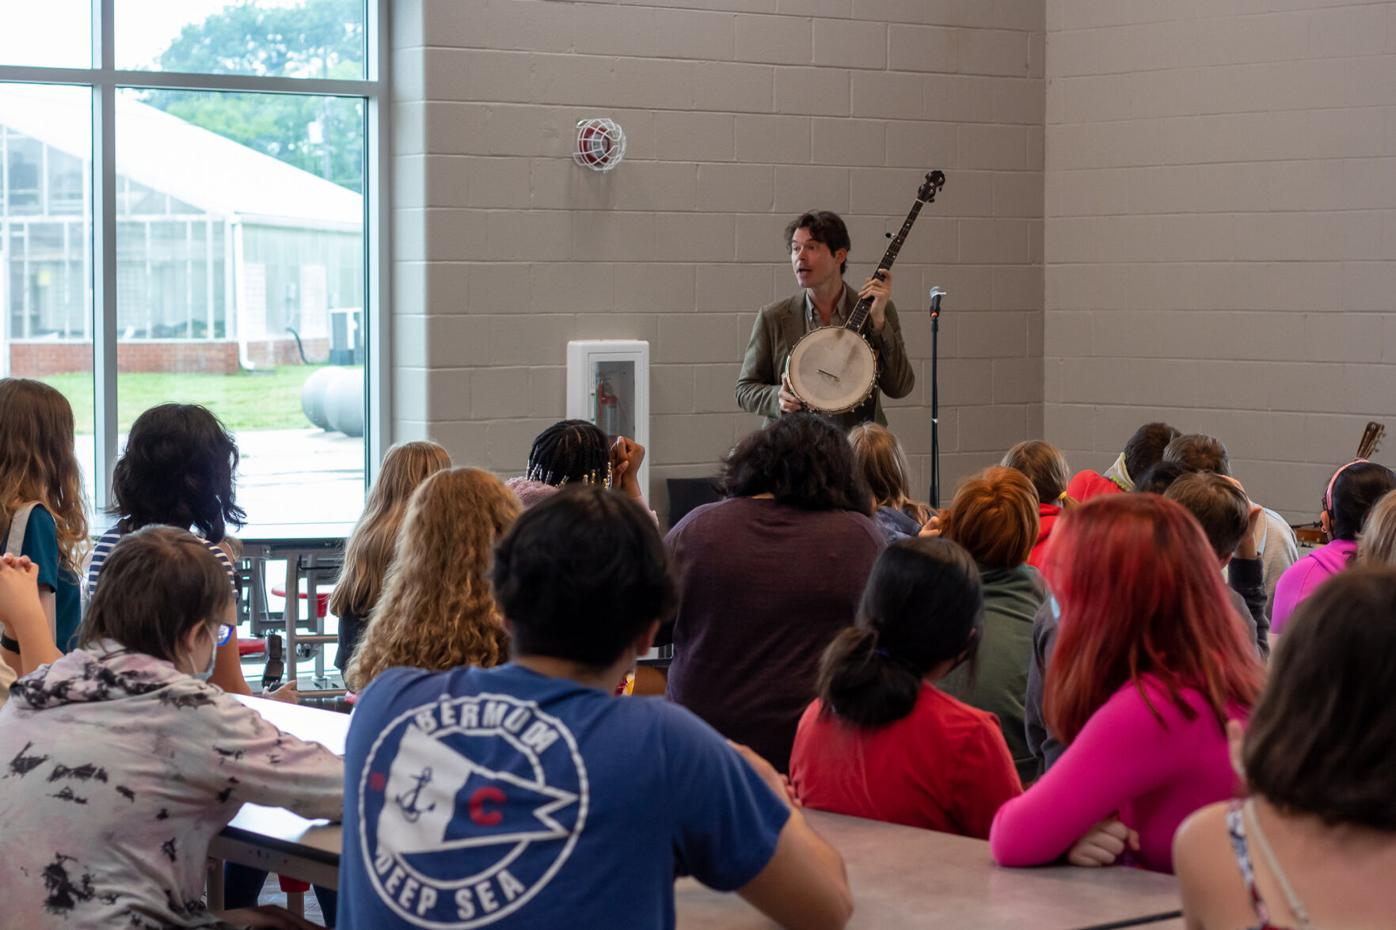 Ketch Secor speaks to music students gathered at Overton High School